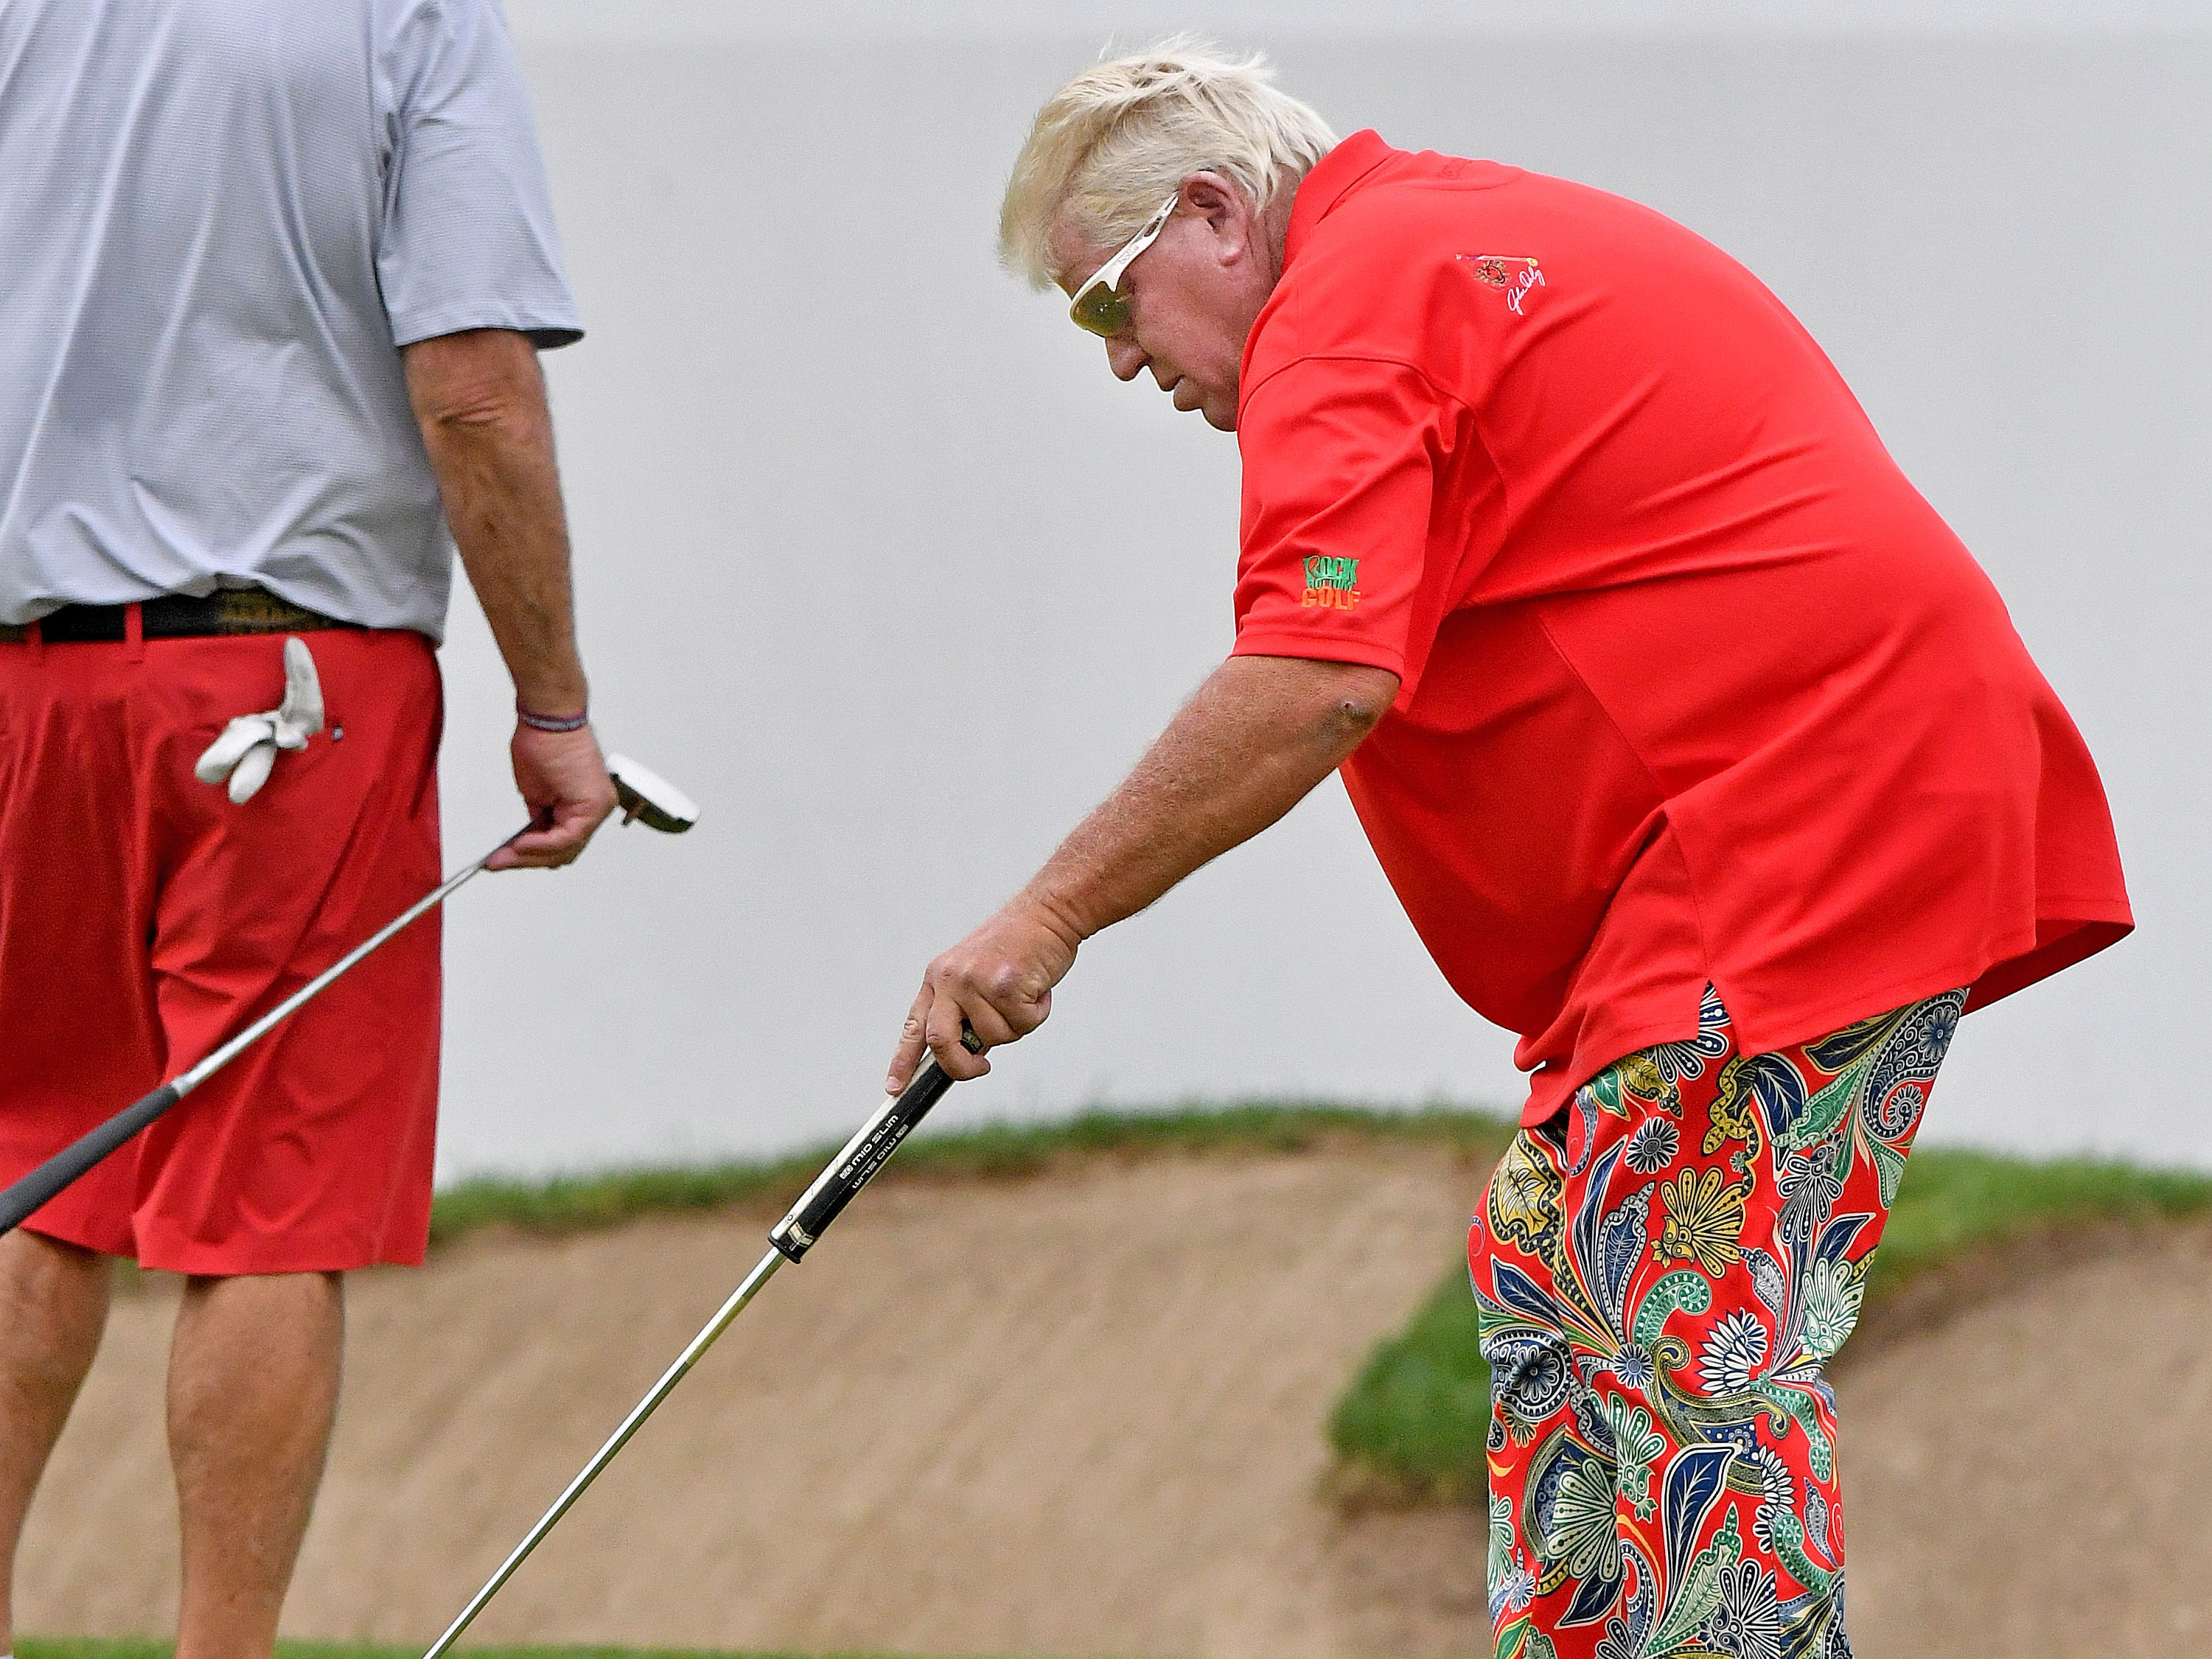 After missing his first putt on the 18th hole, John Daly scoops the ball toward him.